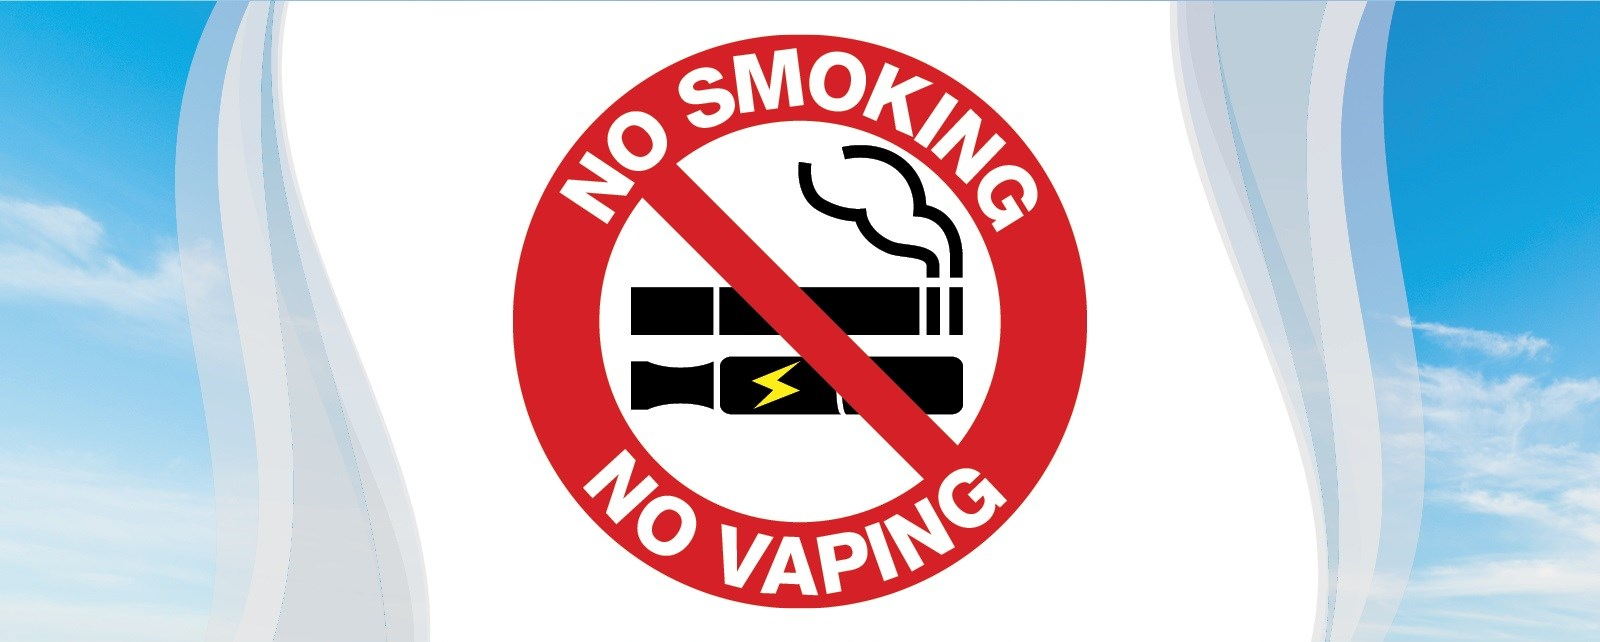 No smoking and no vaping image with smoke and clouds.